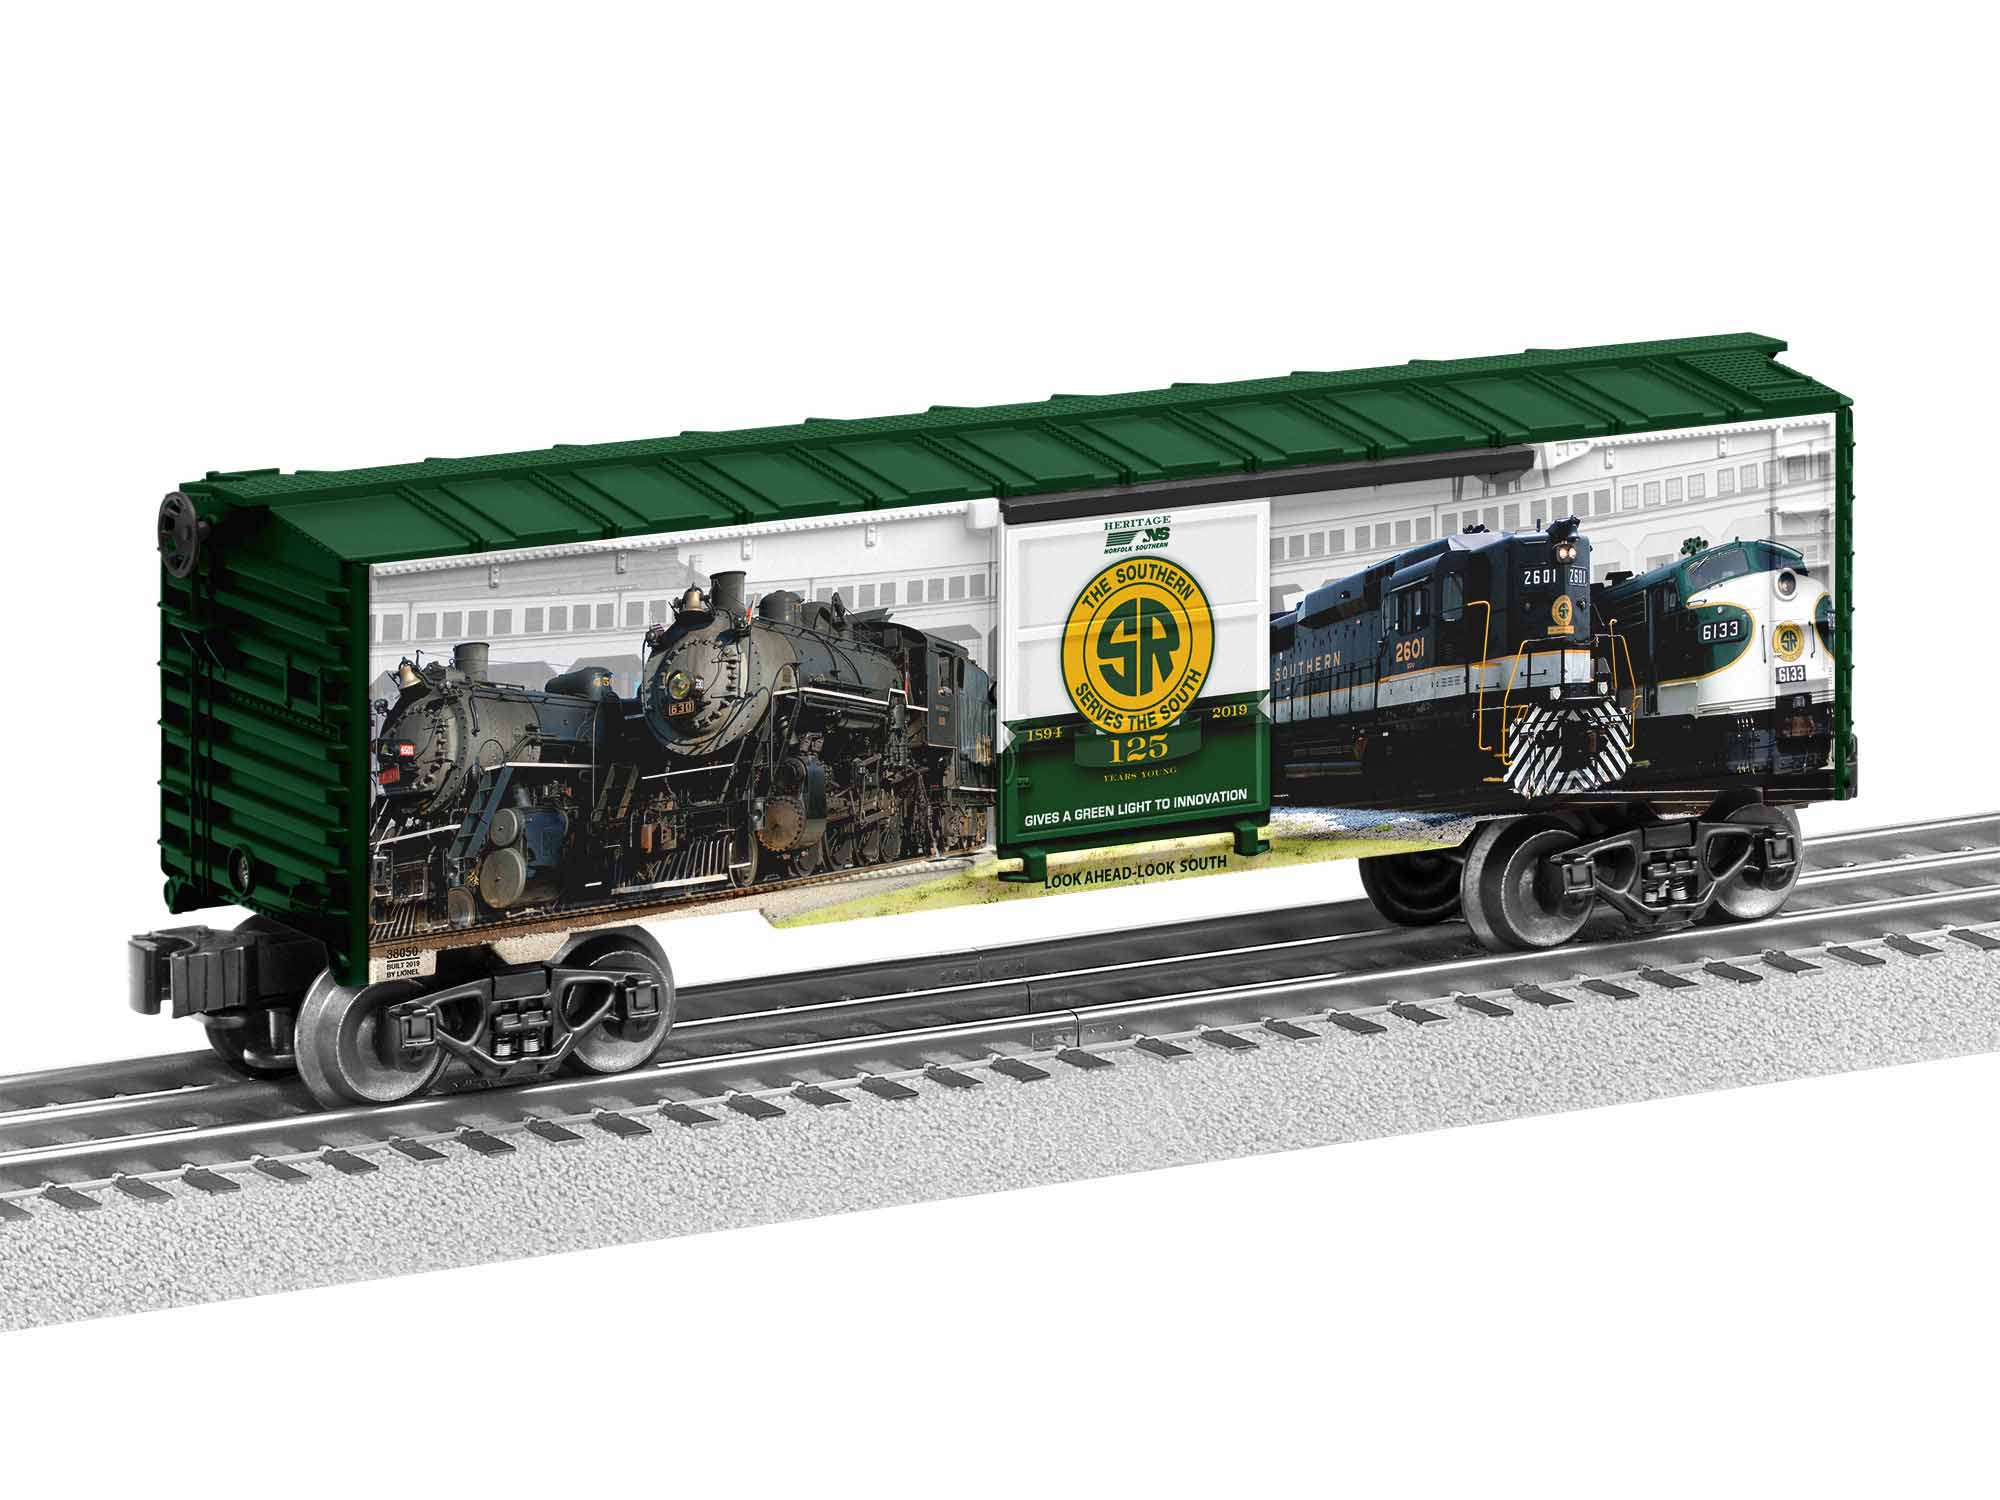 LNL1938050 Lionel O-27 Southern 125 Boxcar Made in USA